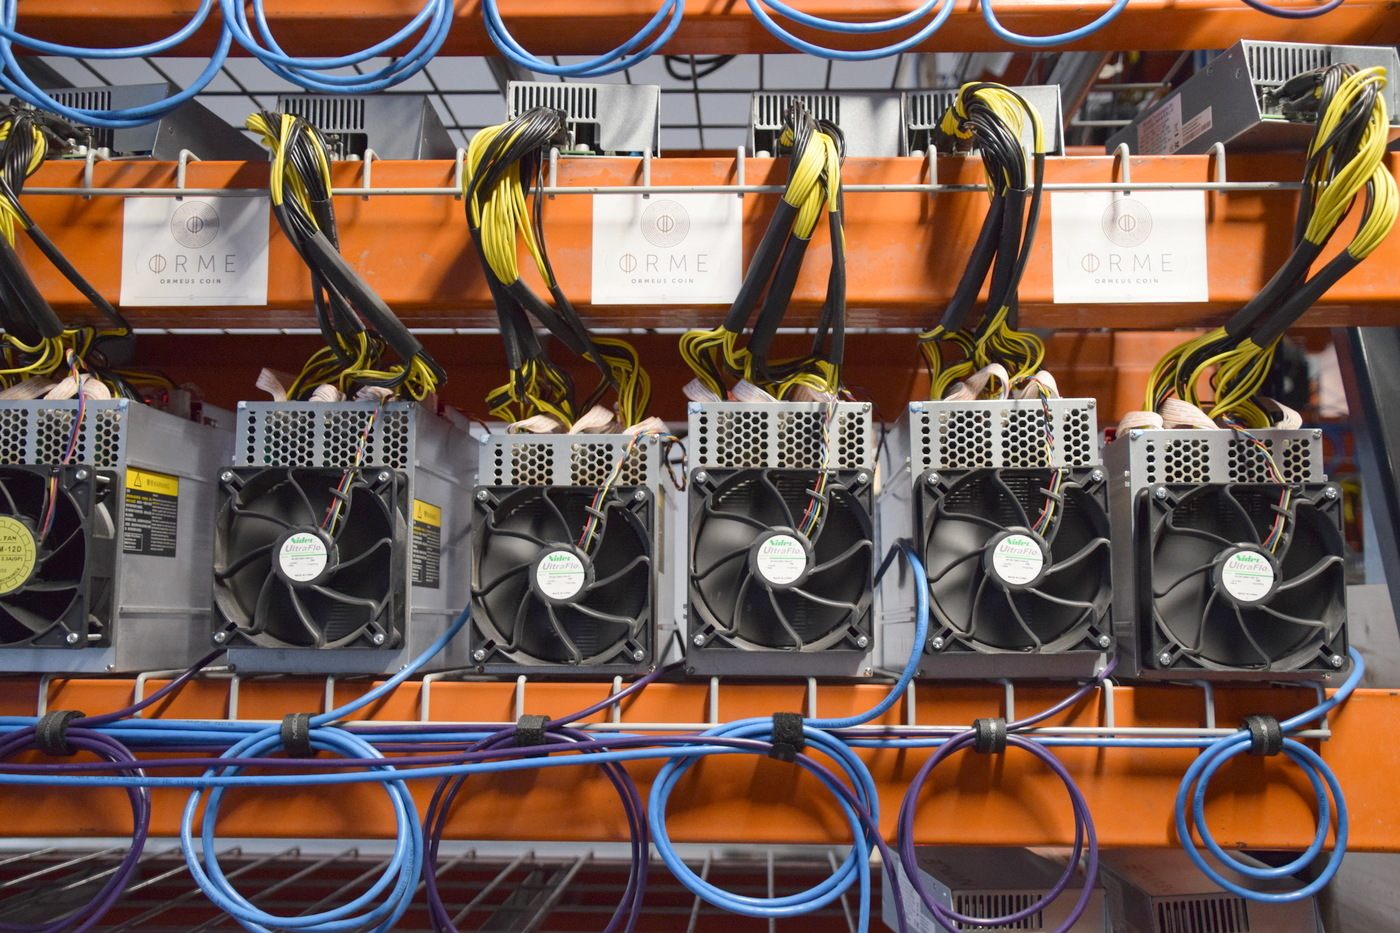 Bitcoin Mining In Massena Hope Or Hype Ncpr News Electrical Wiring Jobs London Computers That Mine For Other Cryptocurrencies Consume Huge Amounts Of Electricity The Question Is Whether They Also Create A Lot Local